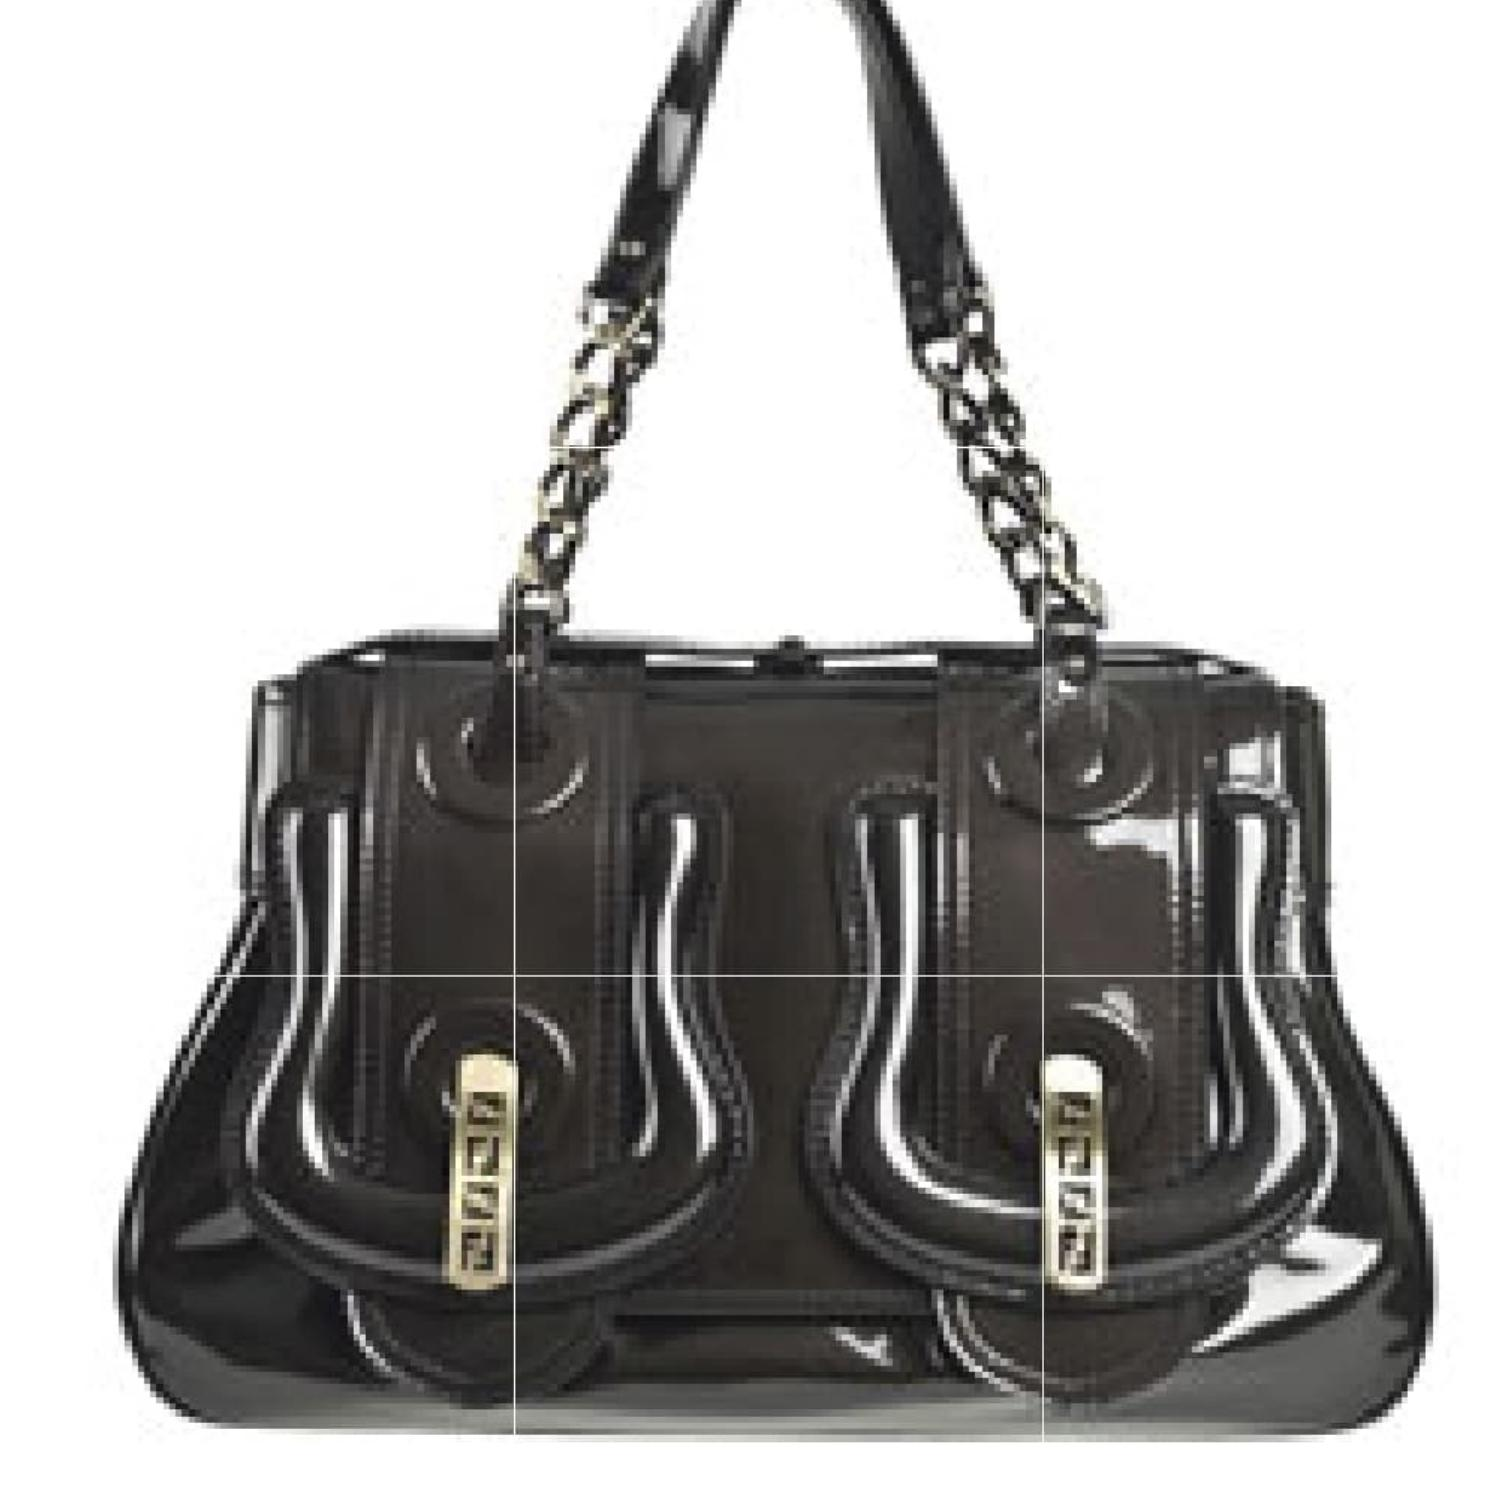 cheapest vintage fendi handbag gently used 153da 2fe69  real fendi shoulder  bag db843 2ad03 5980e09495ae0